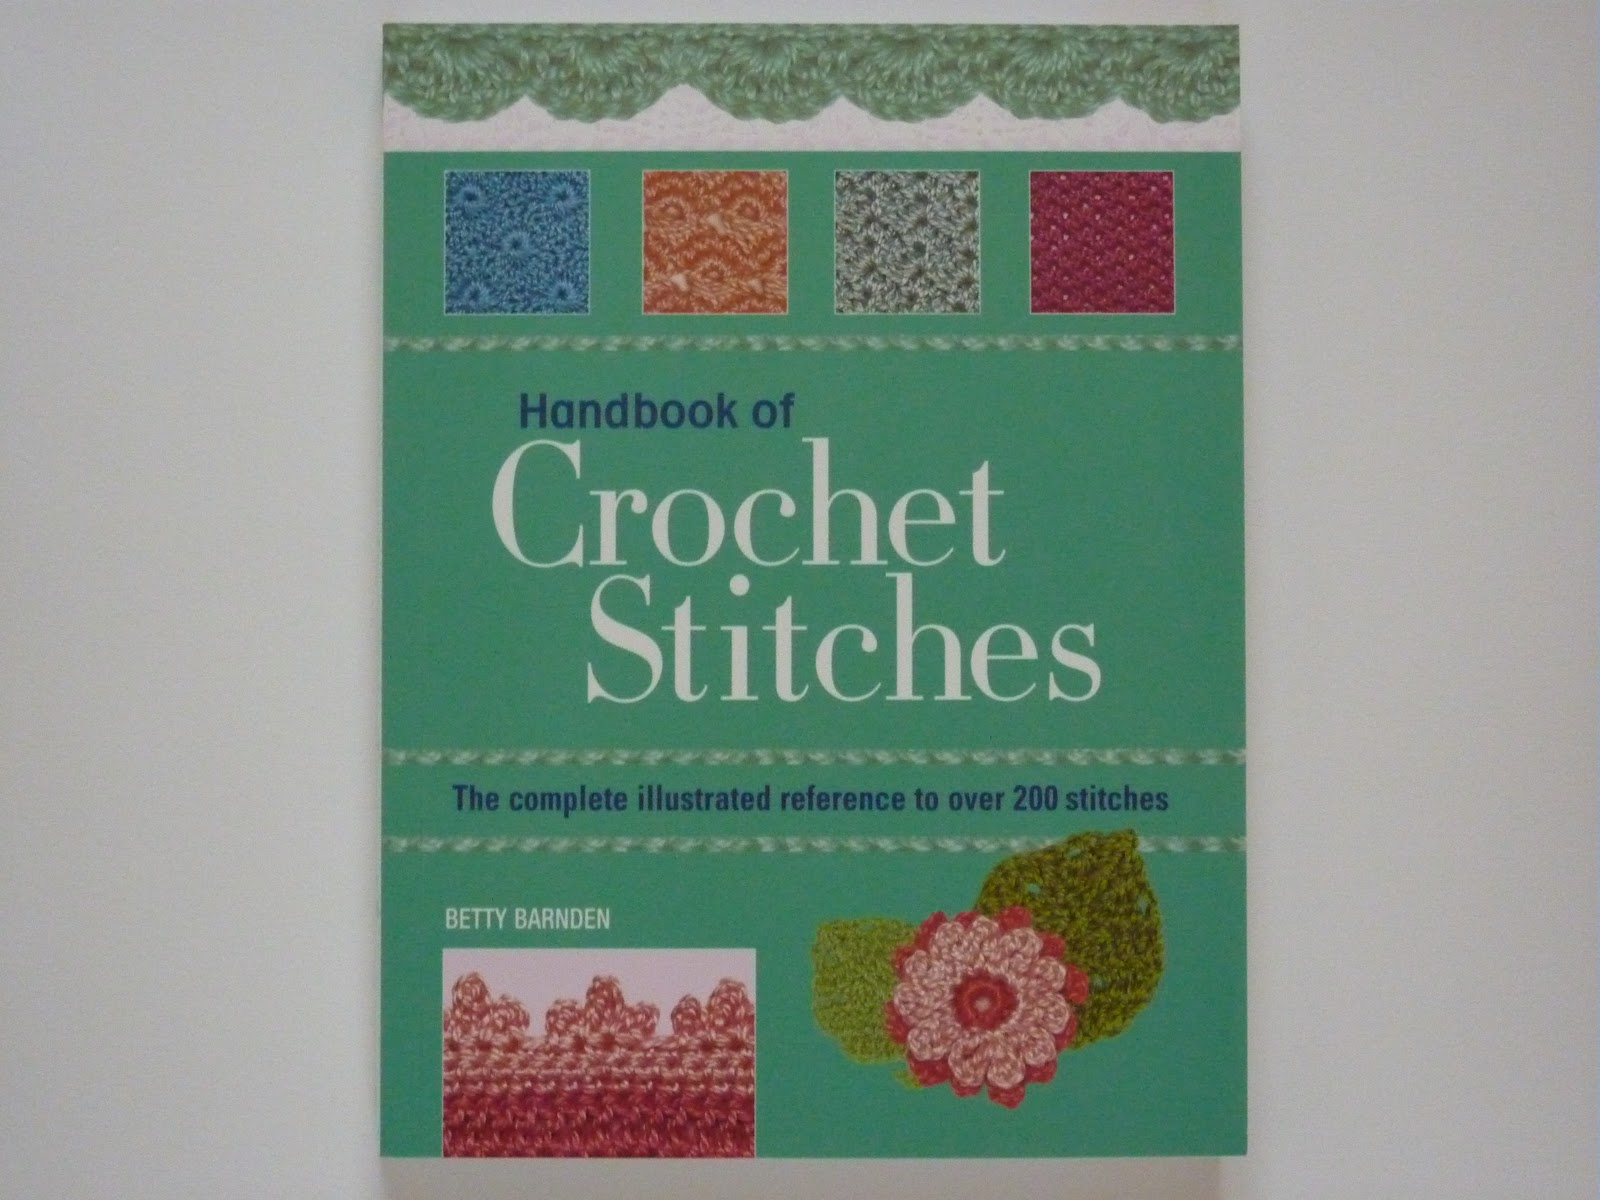 Handmade By Hannah: Book review: Handbook of Crochet Stitches